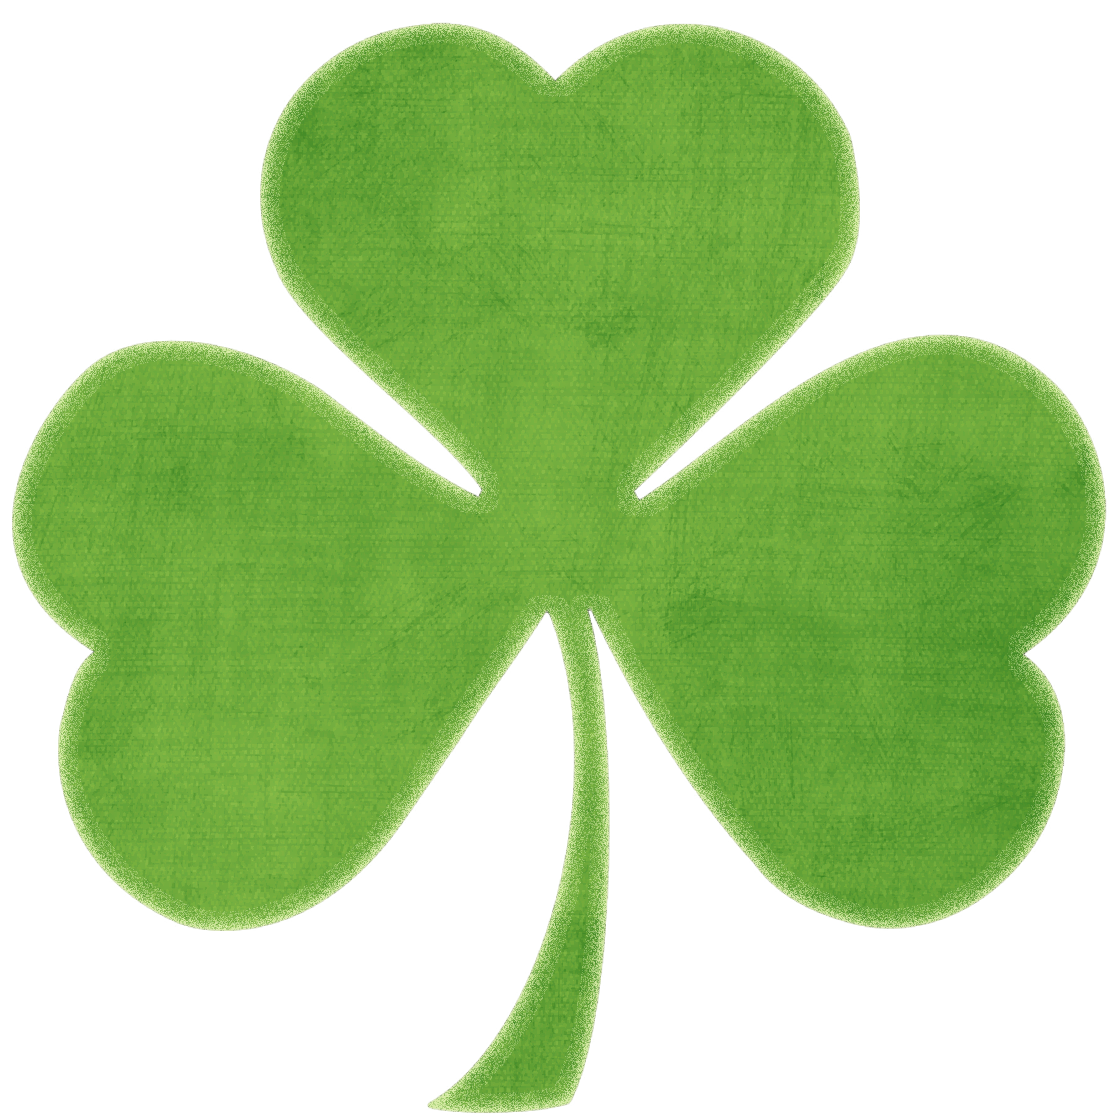 Clover clipart banner. Shamrock png picture gallery